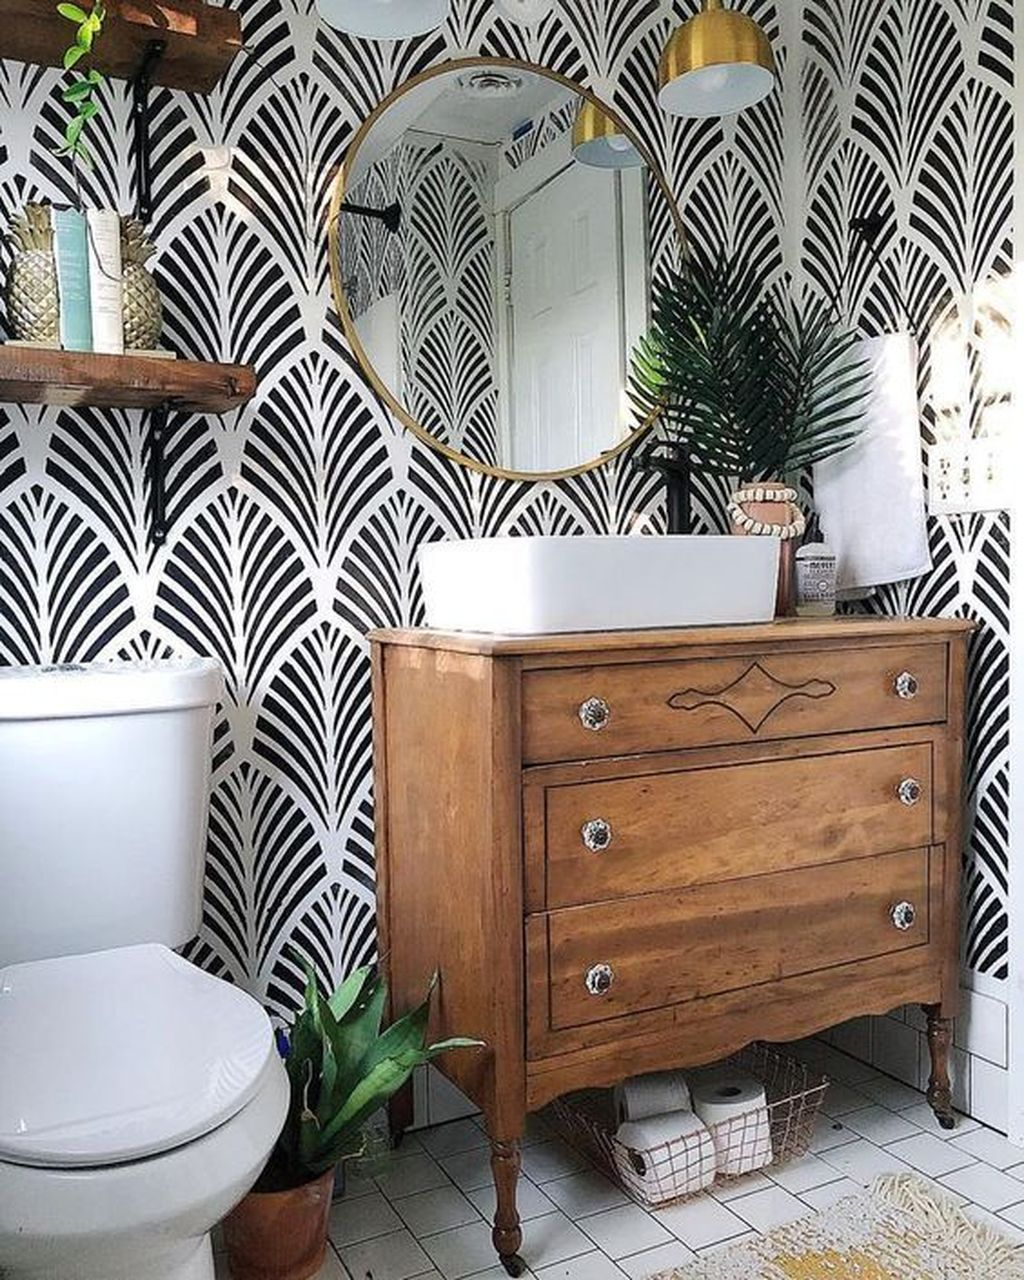 Unusual Bathroom Design Ideas You Need To Know 36